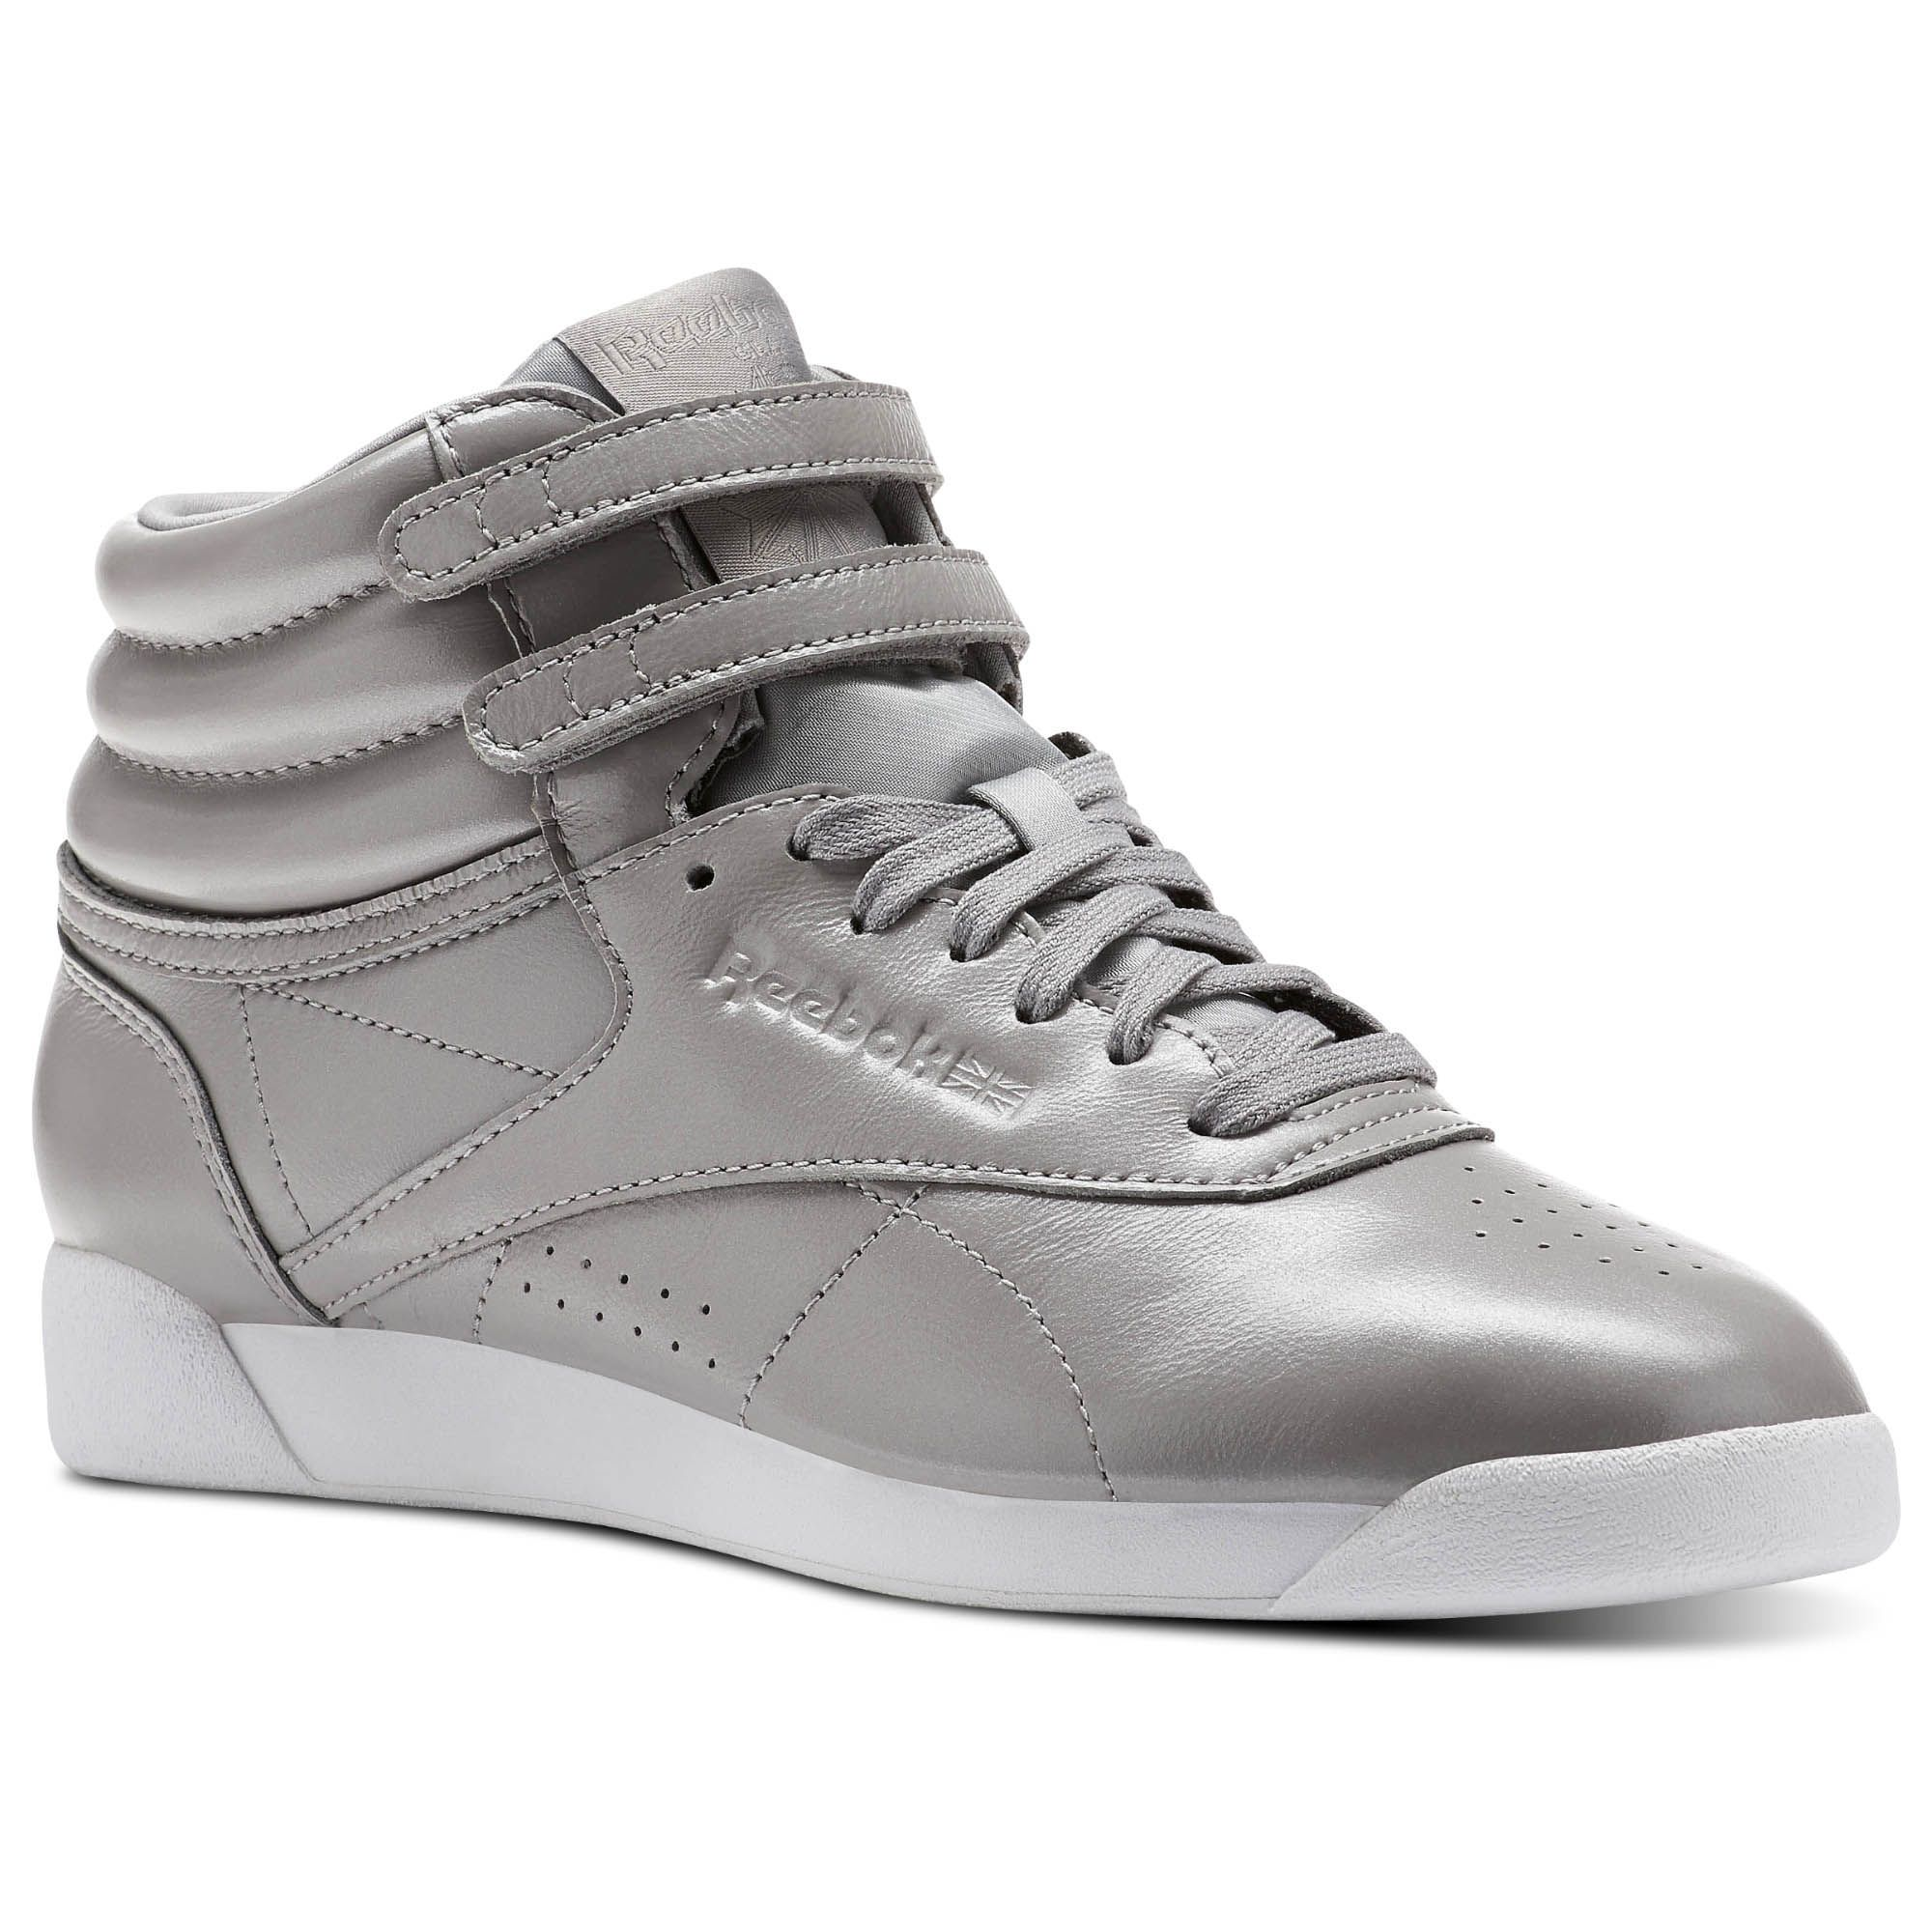 6698aa83c03674 Shop for Freestyle Hi Iridescent - Grey at reebok.com. See all the styles  and colors of Freestyle Hi Iridescent - Grey at the official Reebok US  online ...